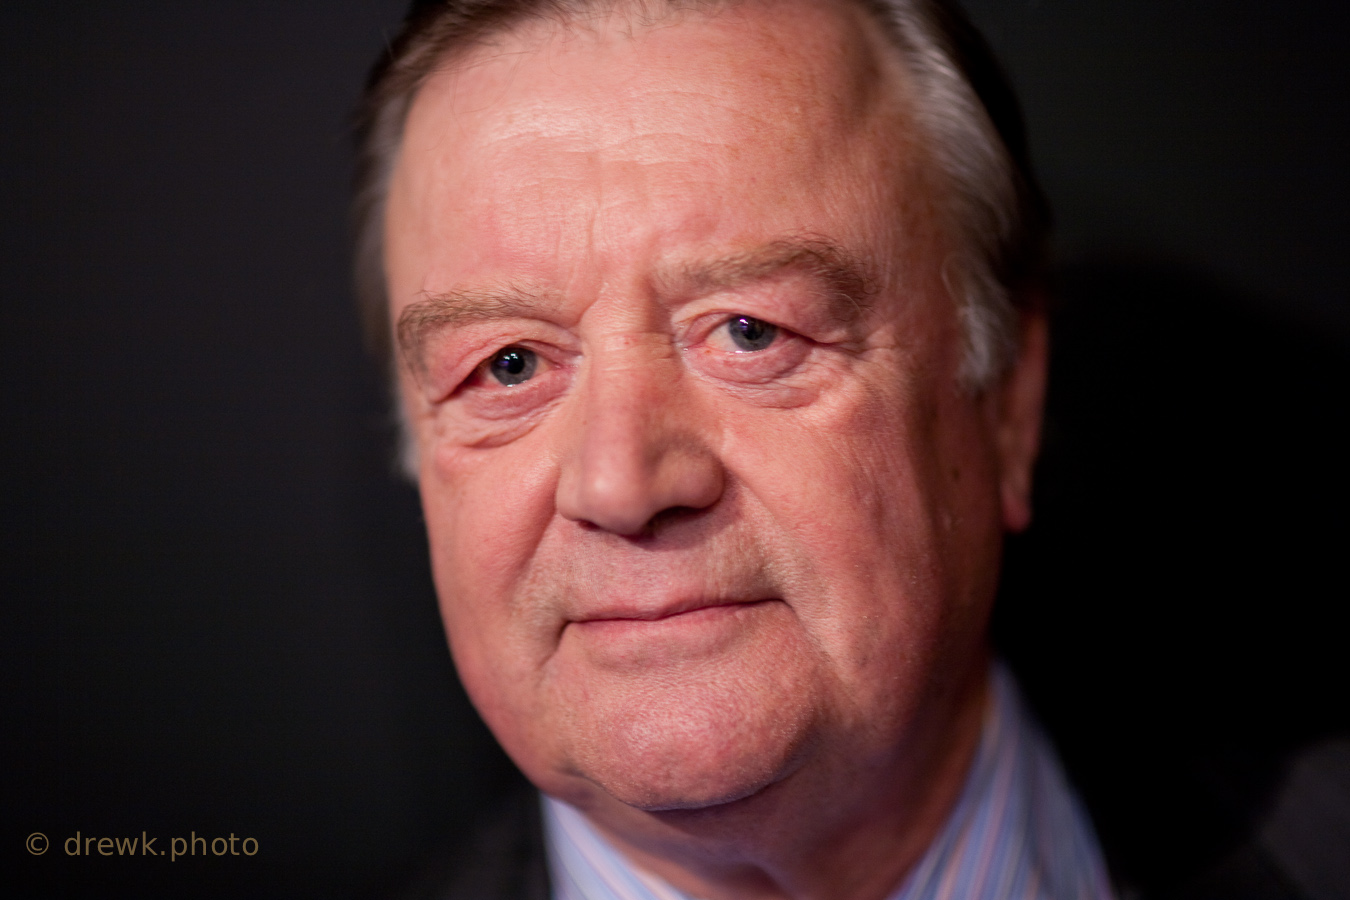 Ken Clarke, MP UK Justice Secretary, taken at the BBC \